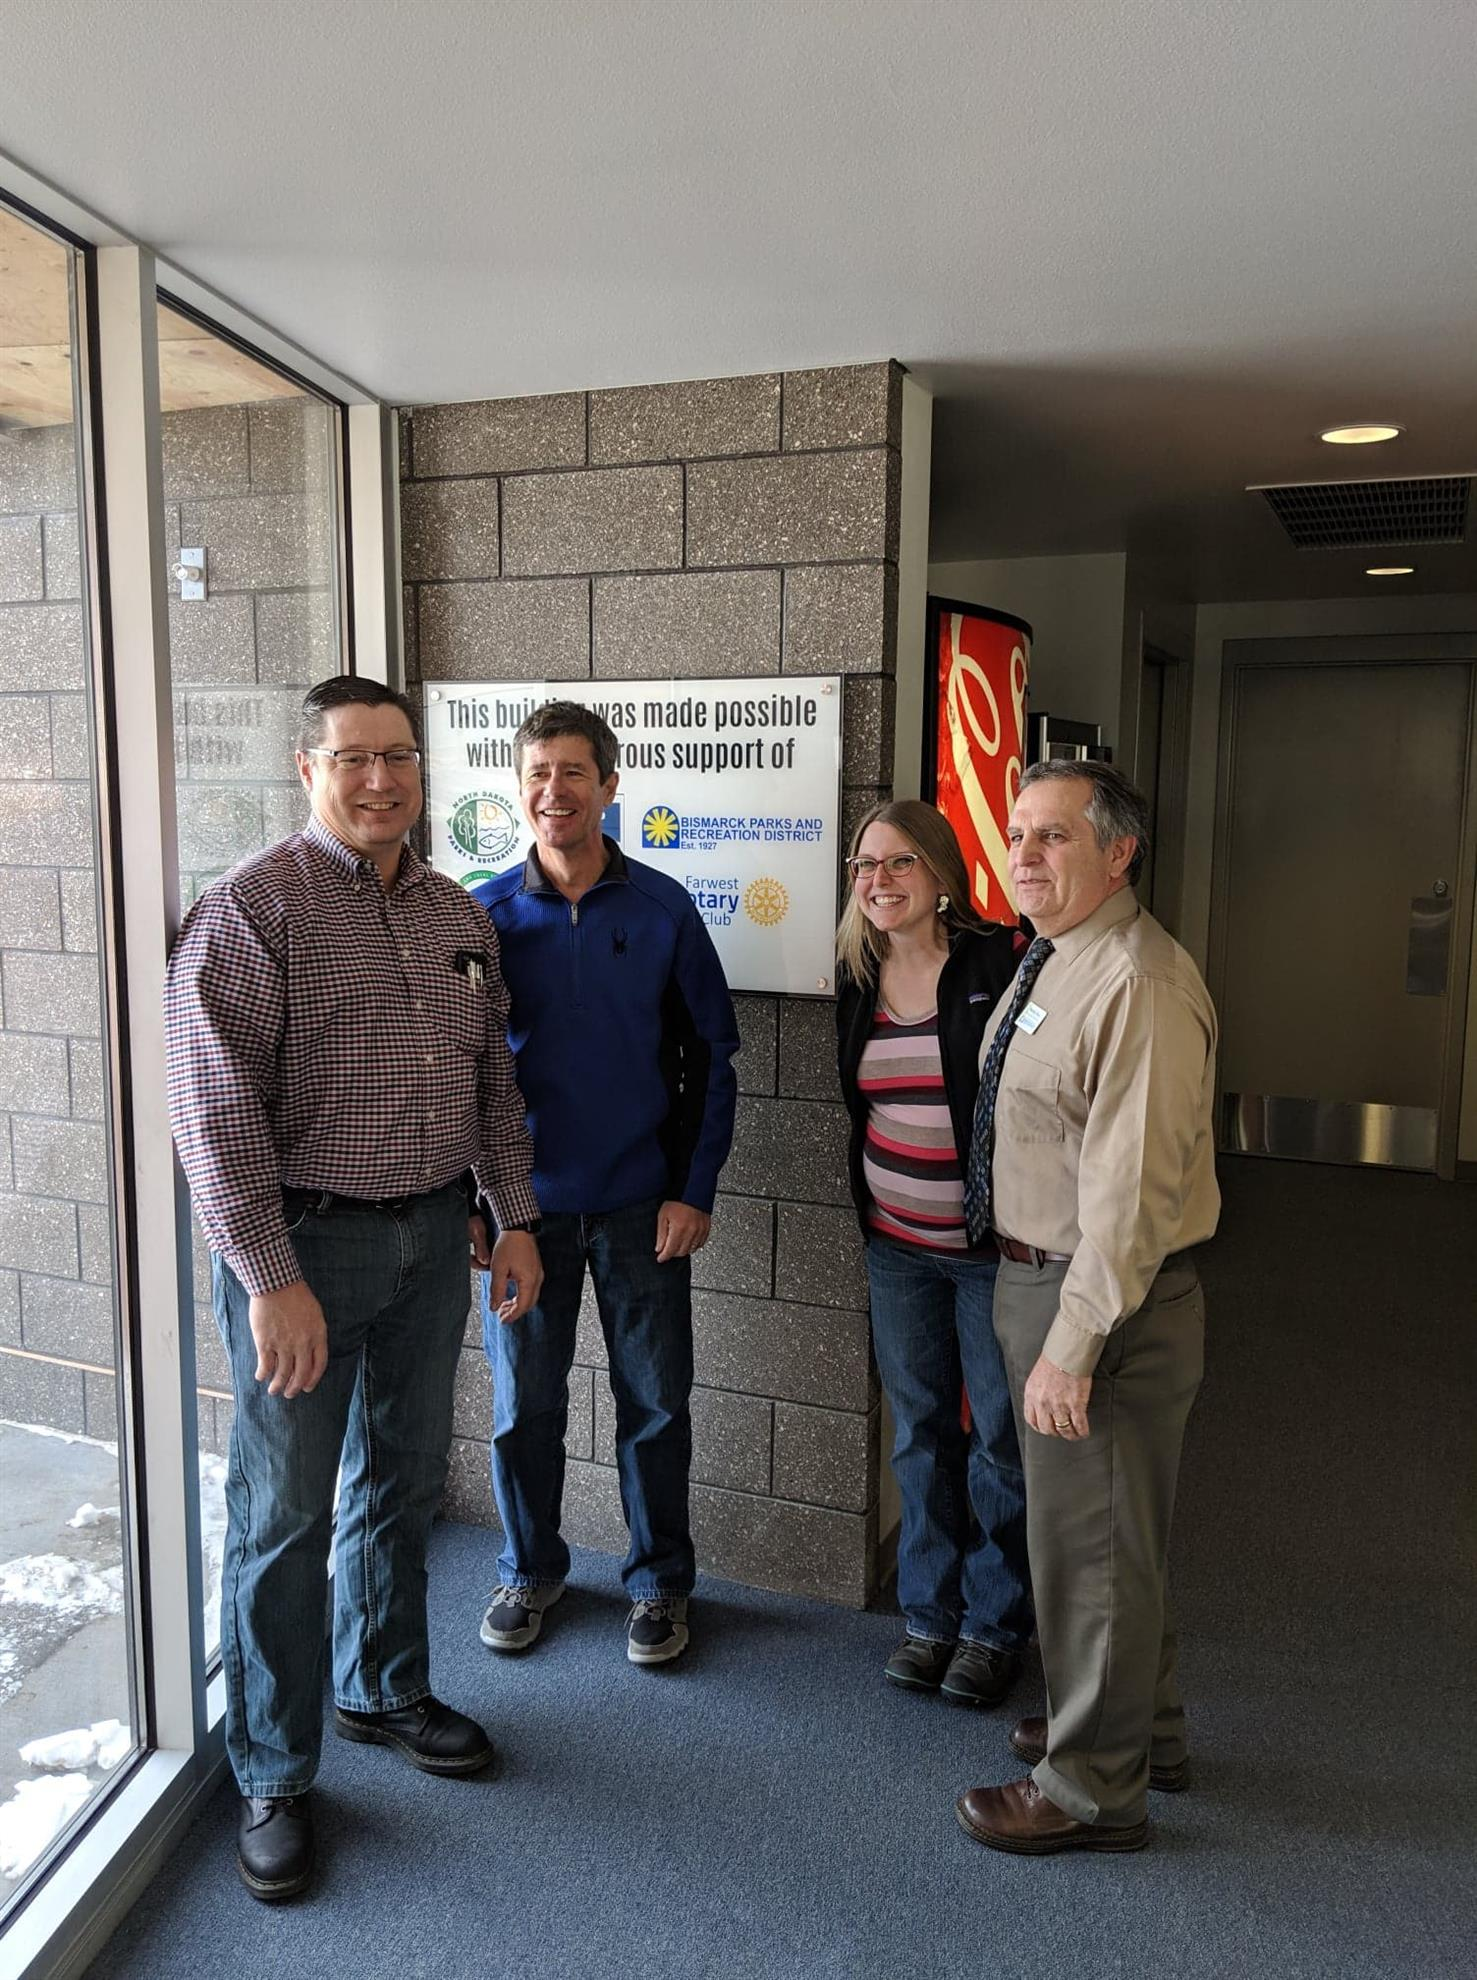 FARWEST ROTARY COMMUNITY CENTER OPENS IN BISMARCK | Rotary